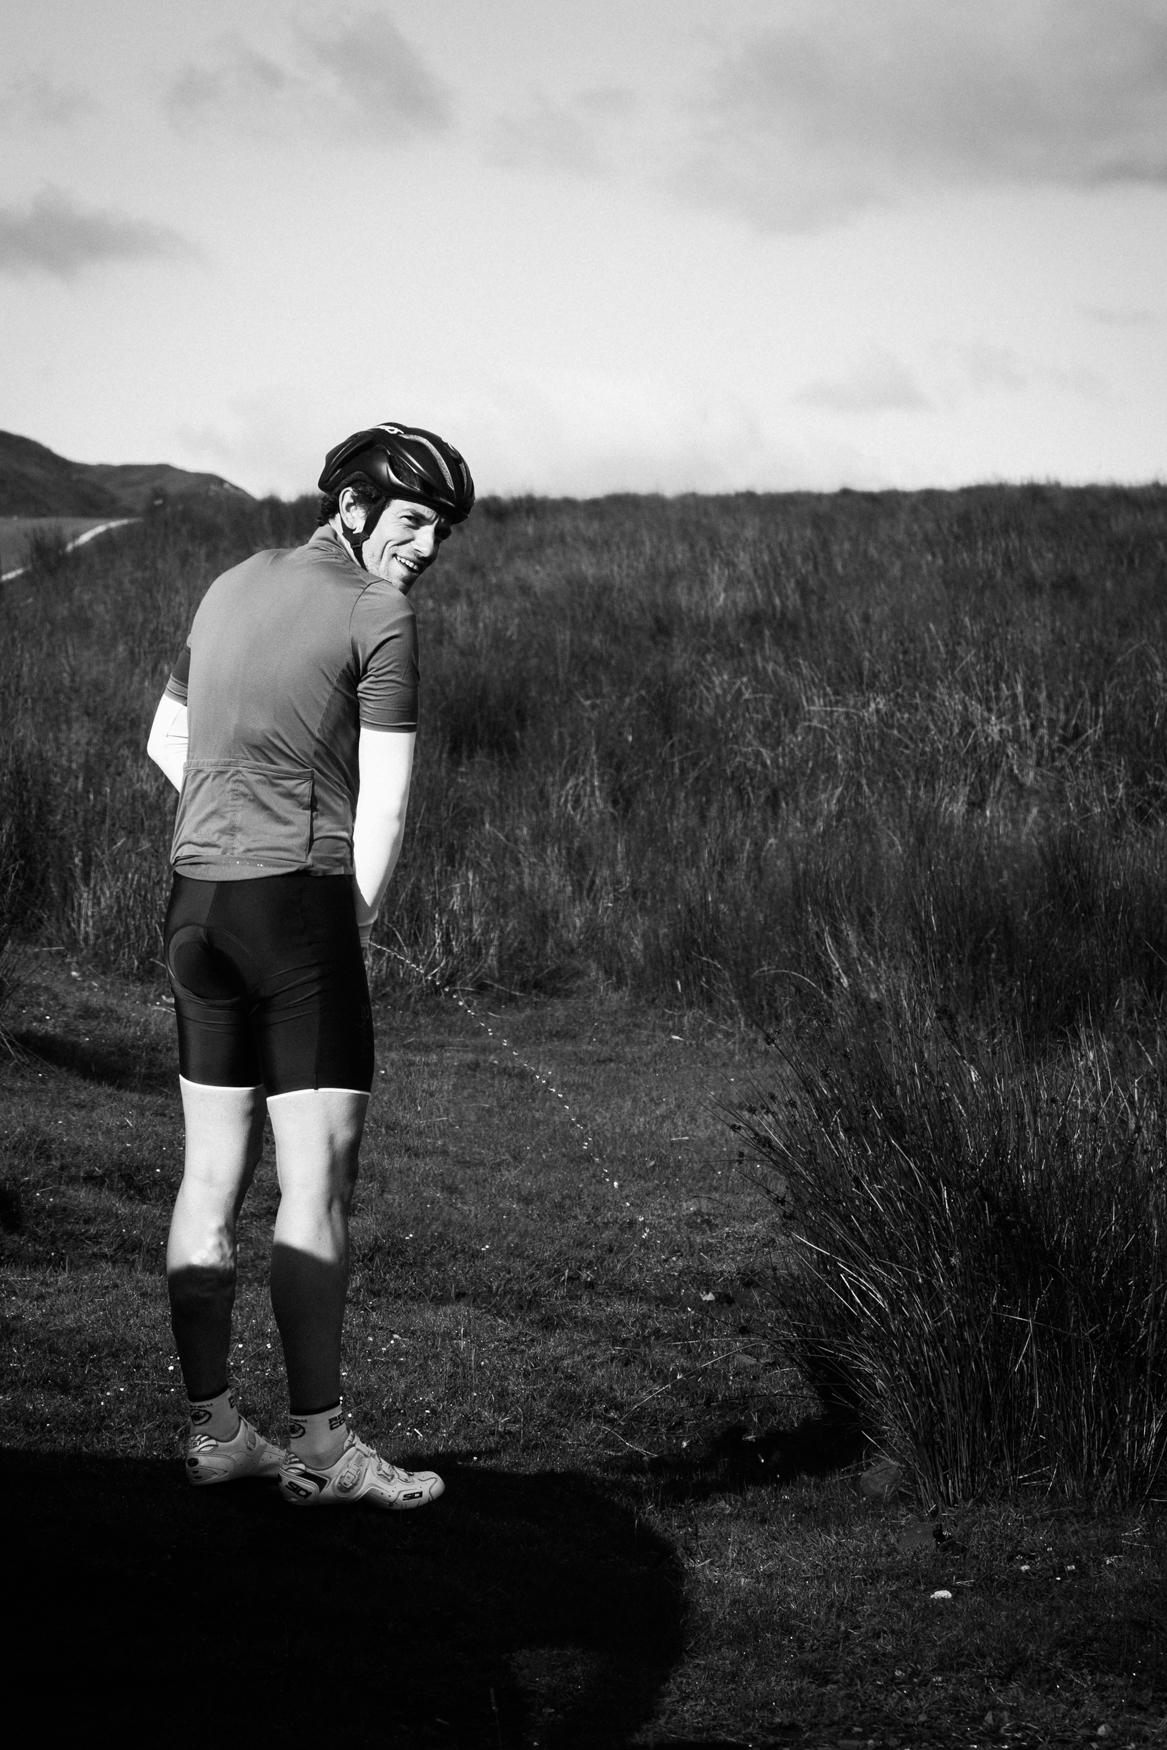 Alex-Sedgmond-Photography-Cardiff-RAS-BreconBeacons-Cycling-Photography-33.JPG